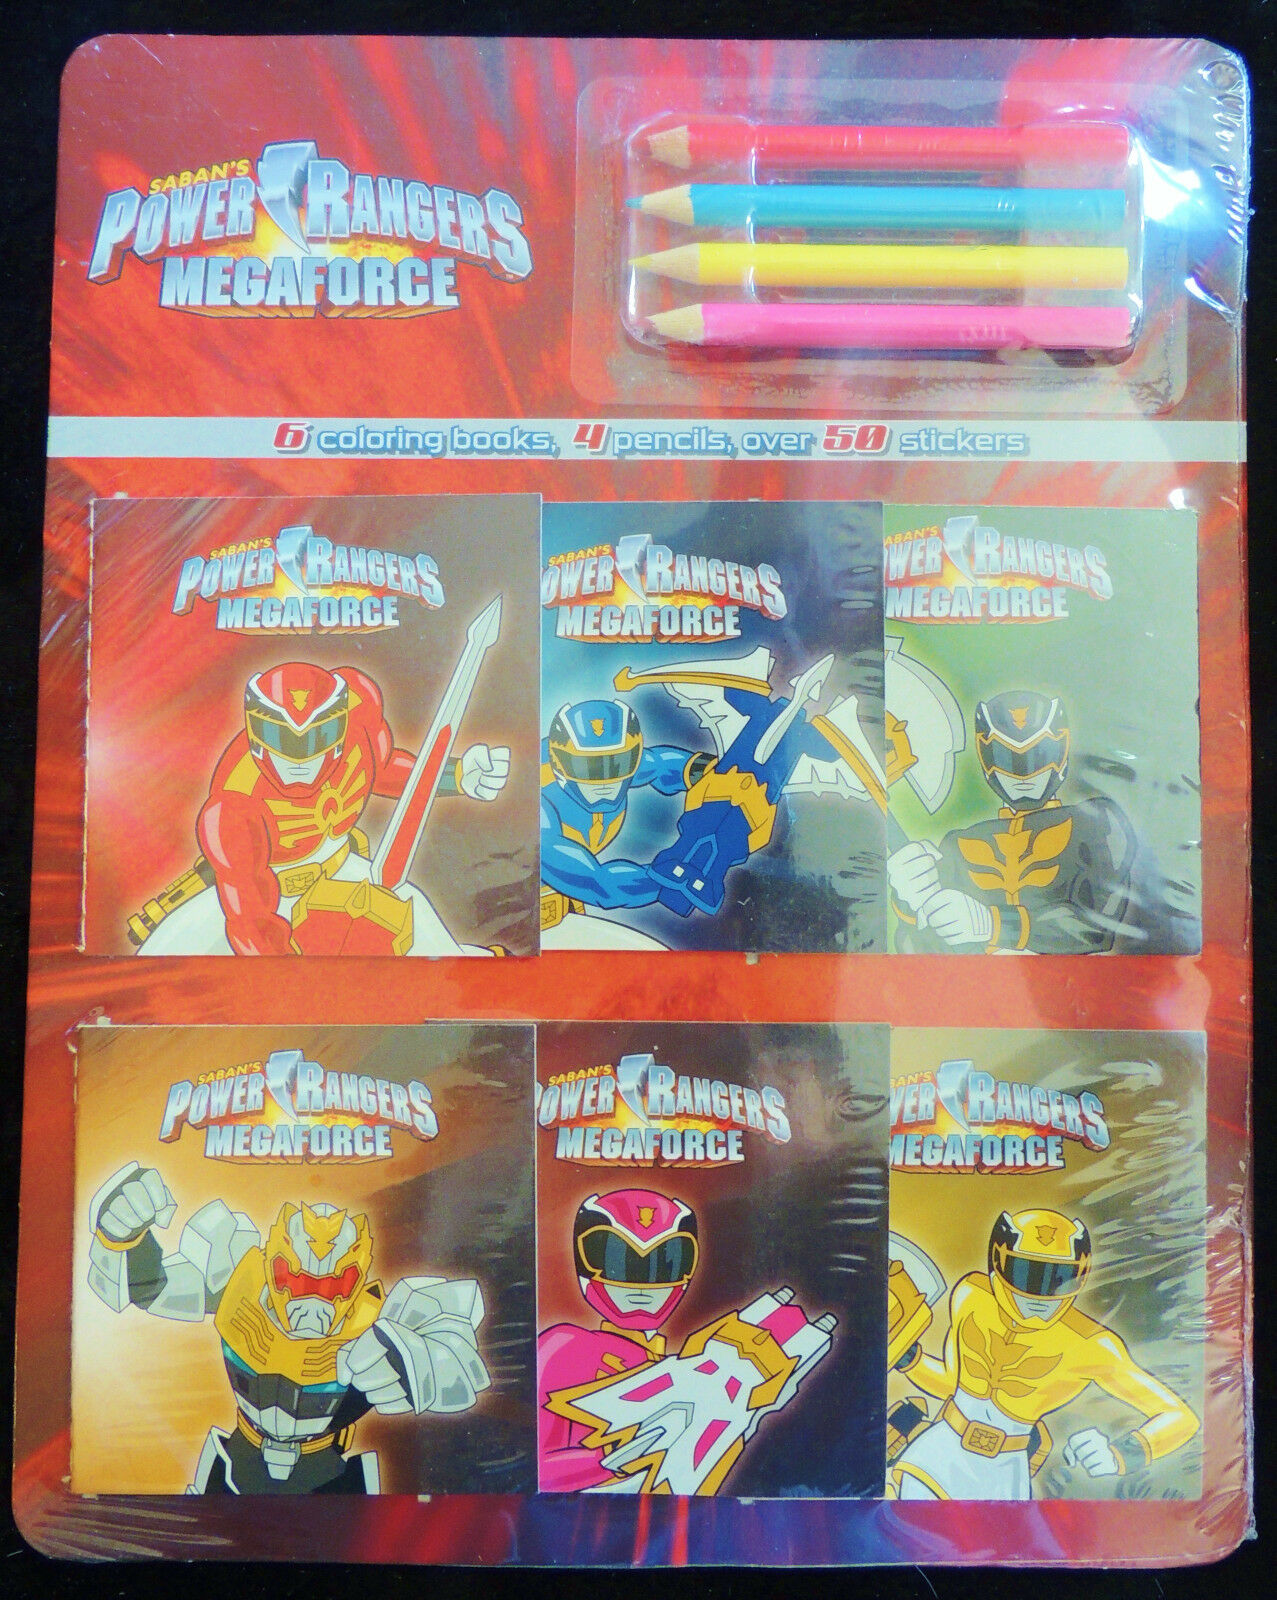 This Is A Brand New Set Of 6 SABANS POWER RANGERS MEGAFORCE MINI COLORING BOOKS